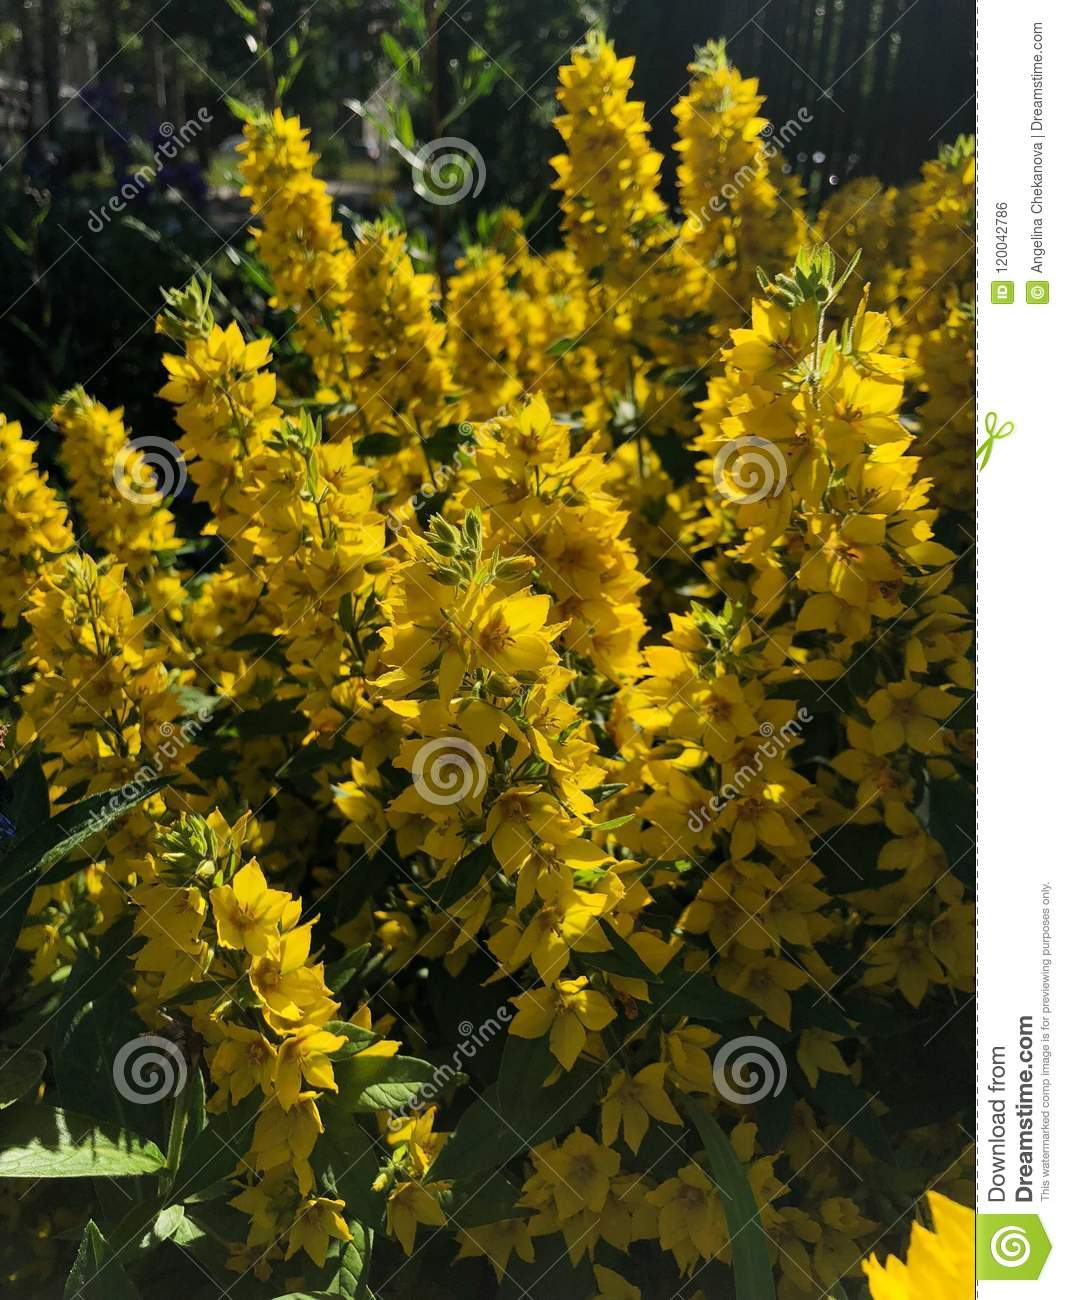 Fluffy Yellow Flower Bushes Of Bells In The Garden Stock Photo